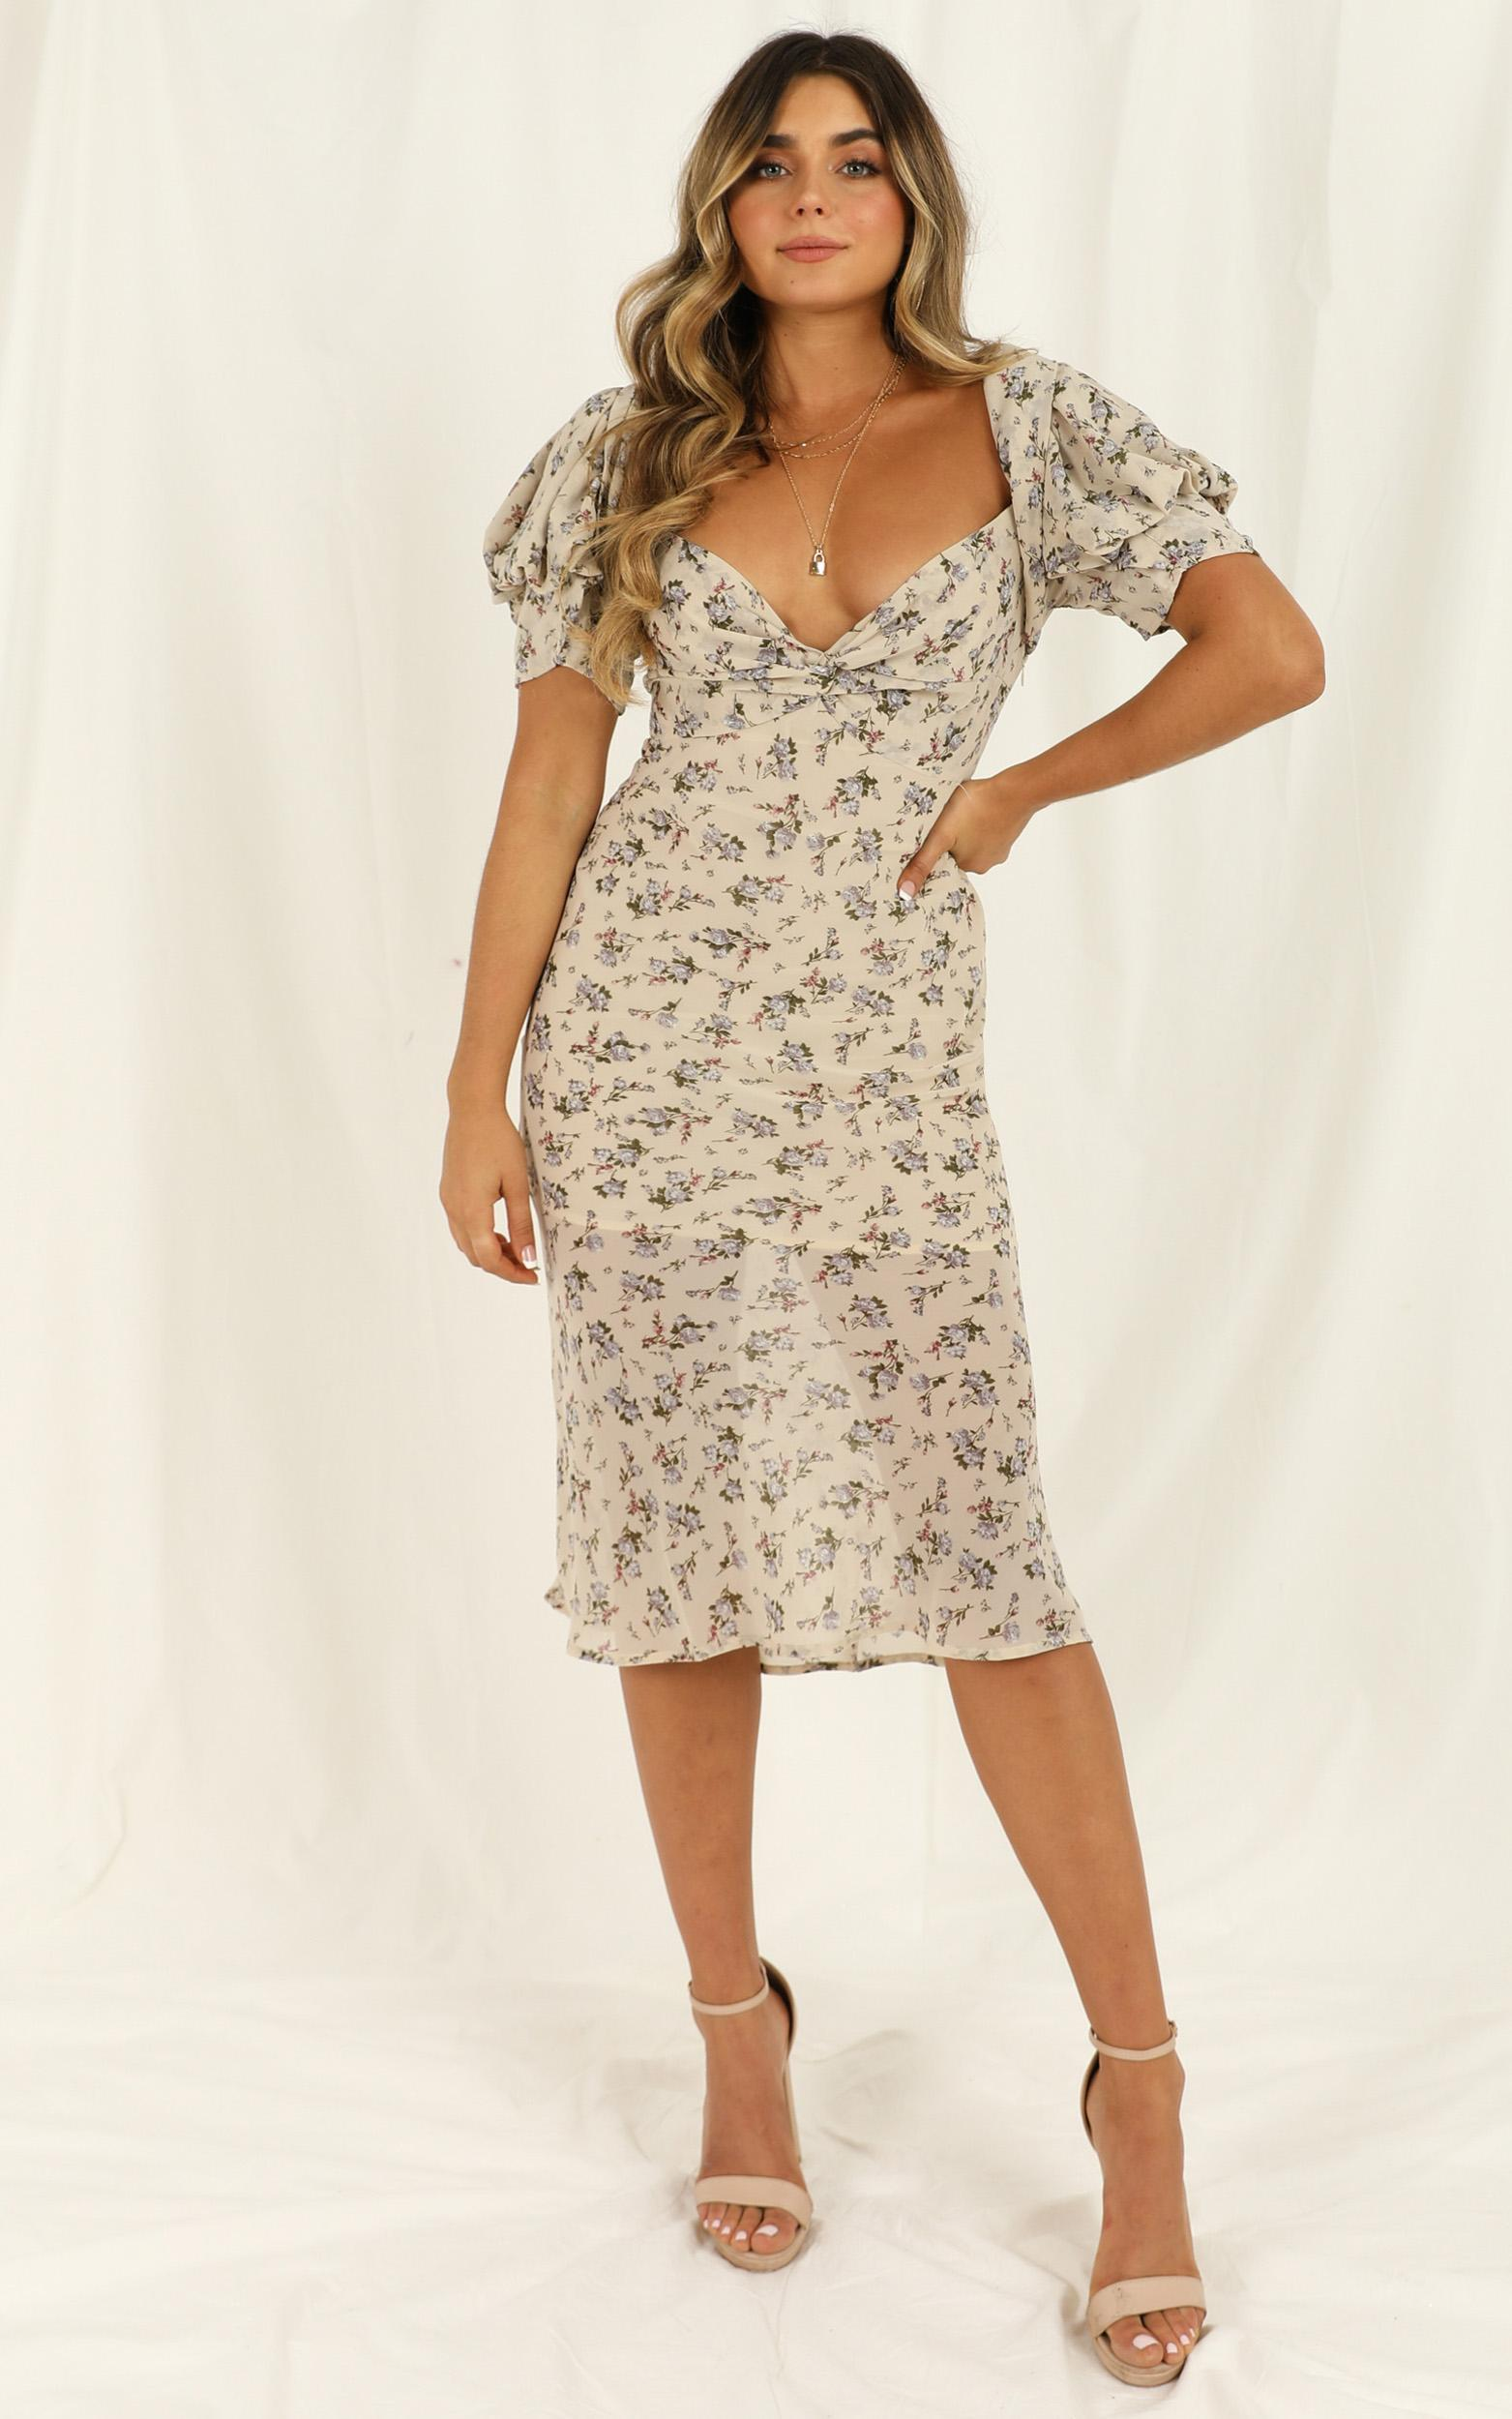 Hold Her Close dress in cream floral - 12 (L), Cream, hi-res image number null